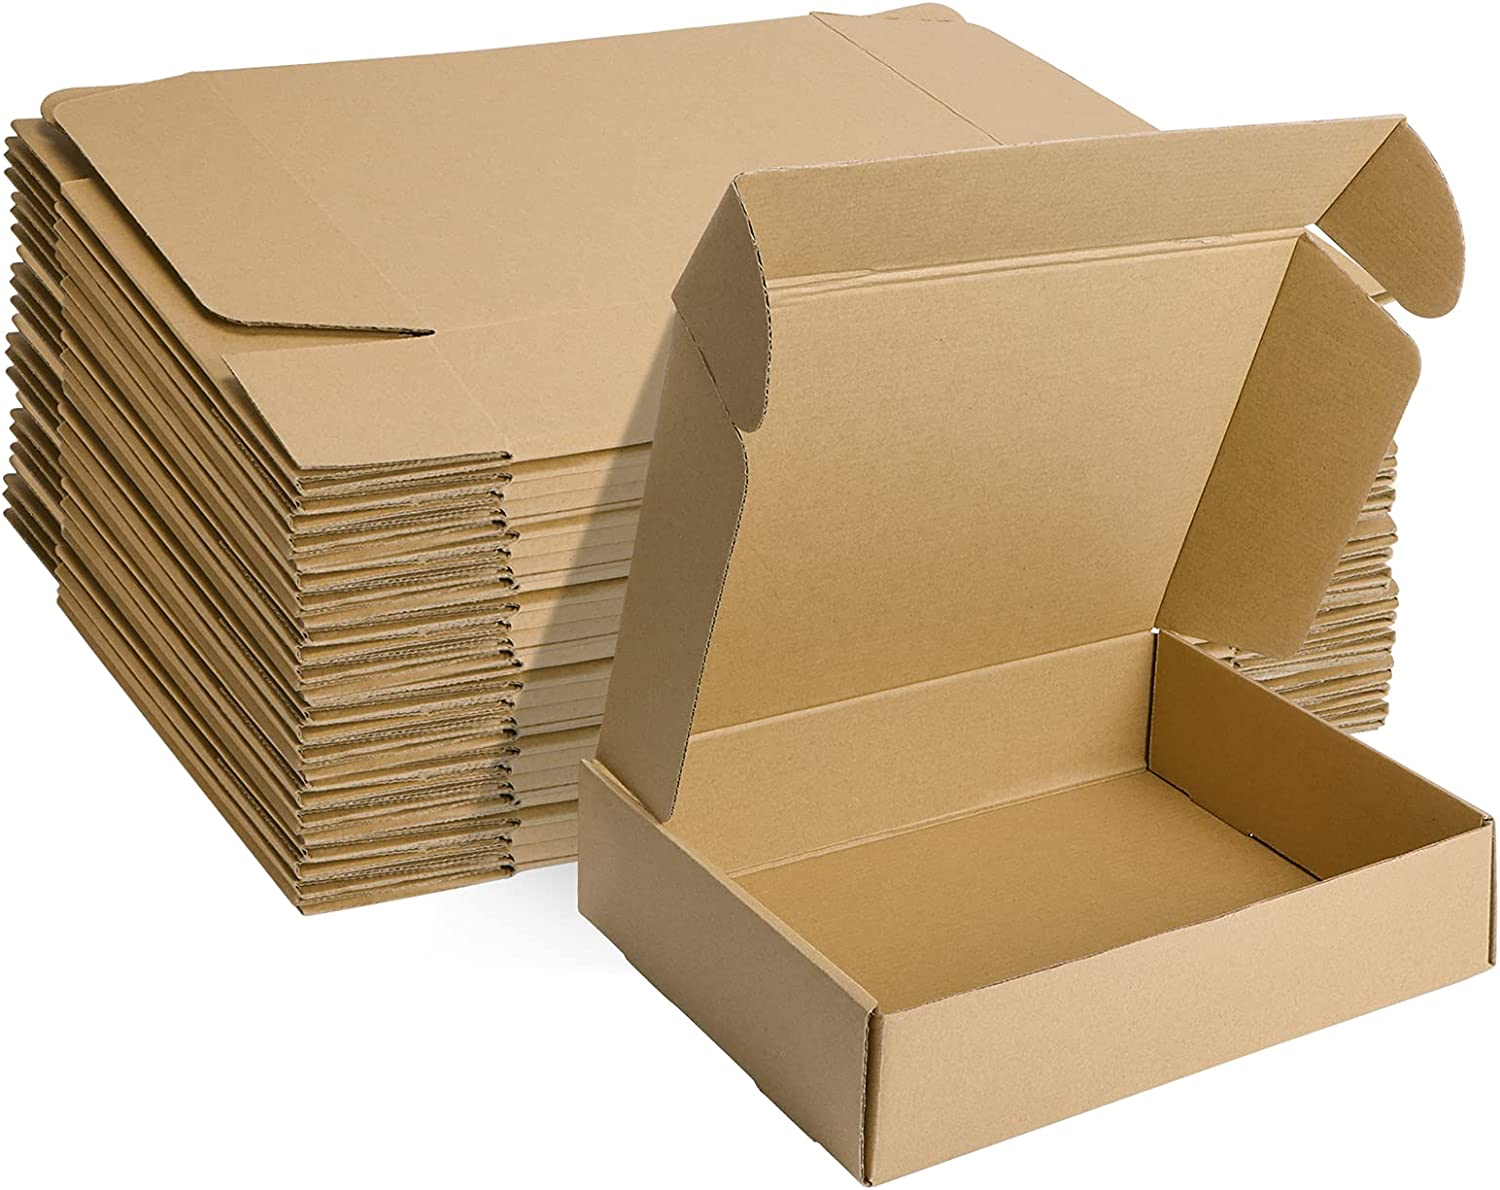 MEBRUDY 12x9x3 Inches Shipping Boxes Pack of 20, Small Corrugated Cardboard Box for Mailing Packing Literature Mailer